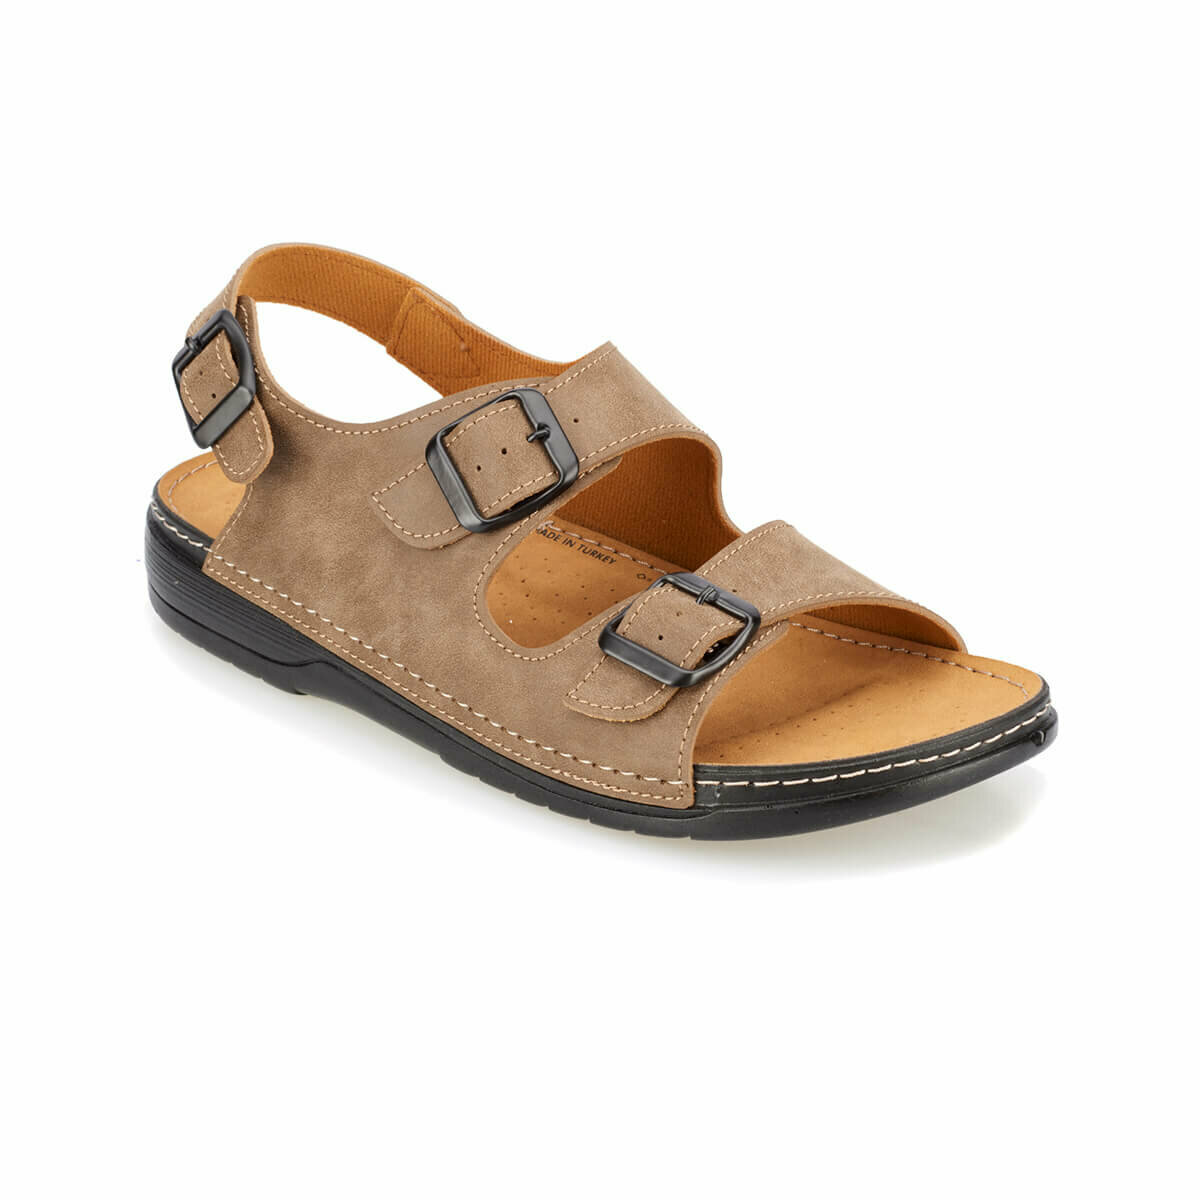 FLO ALEPPO Sand Color Male Sandals KINETIX